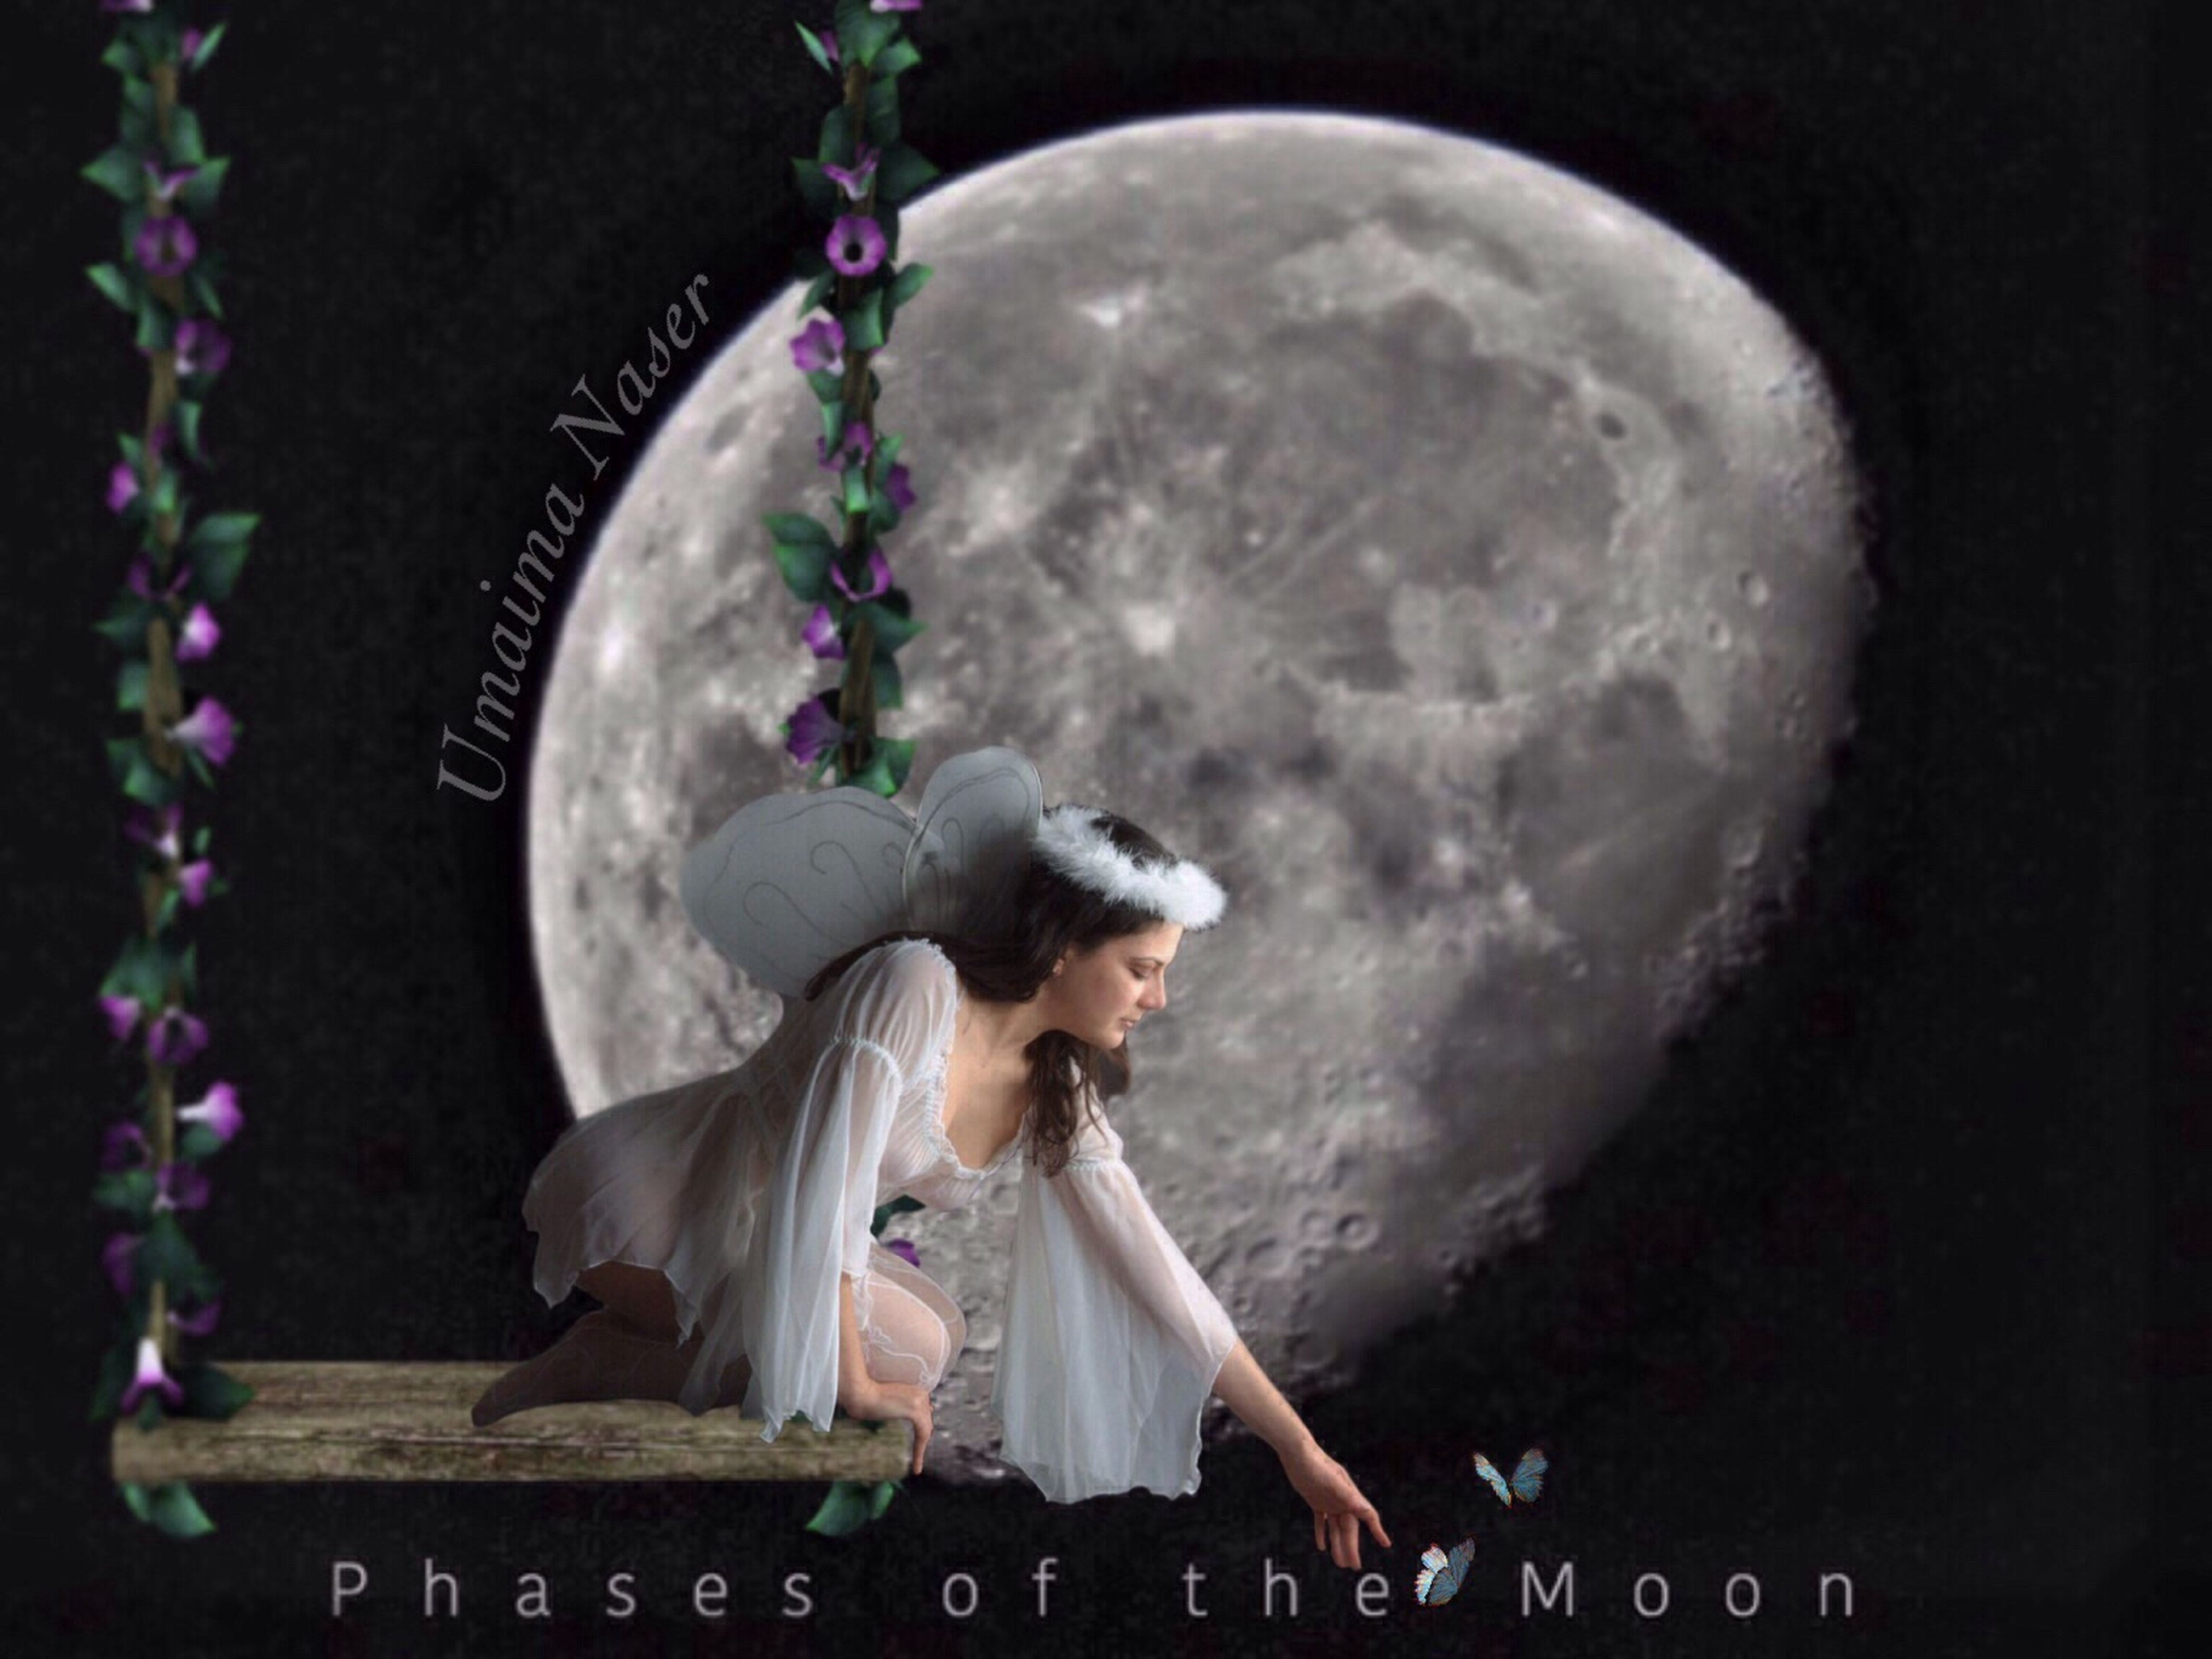 fantasy, moon, space, people, indoors, young adult, adults only, adult